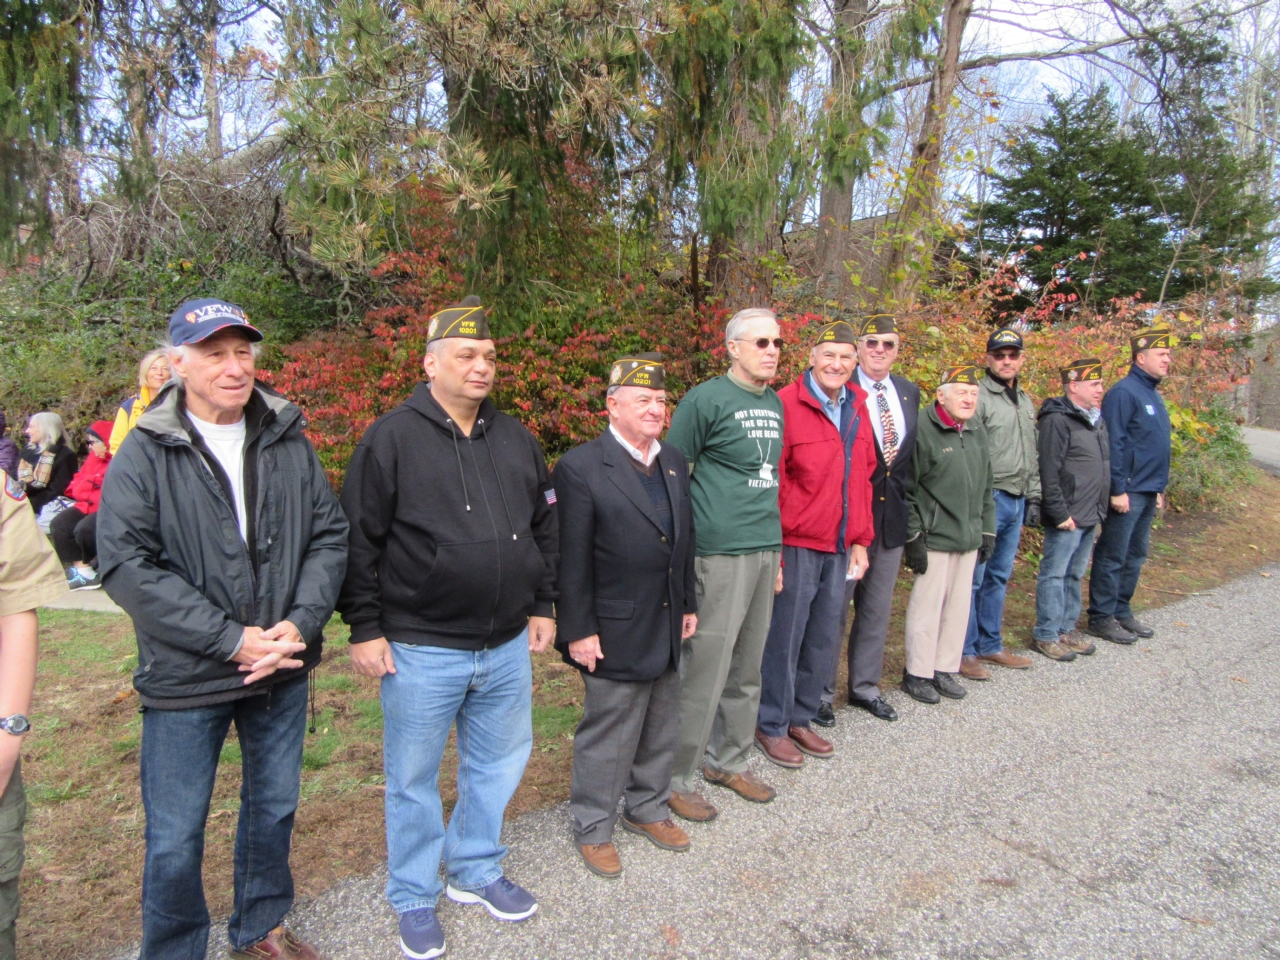 Members of VFW Post 10201 attending the Veterans Day Ceremony.